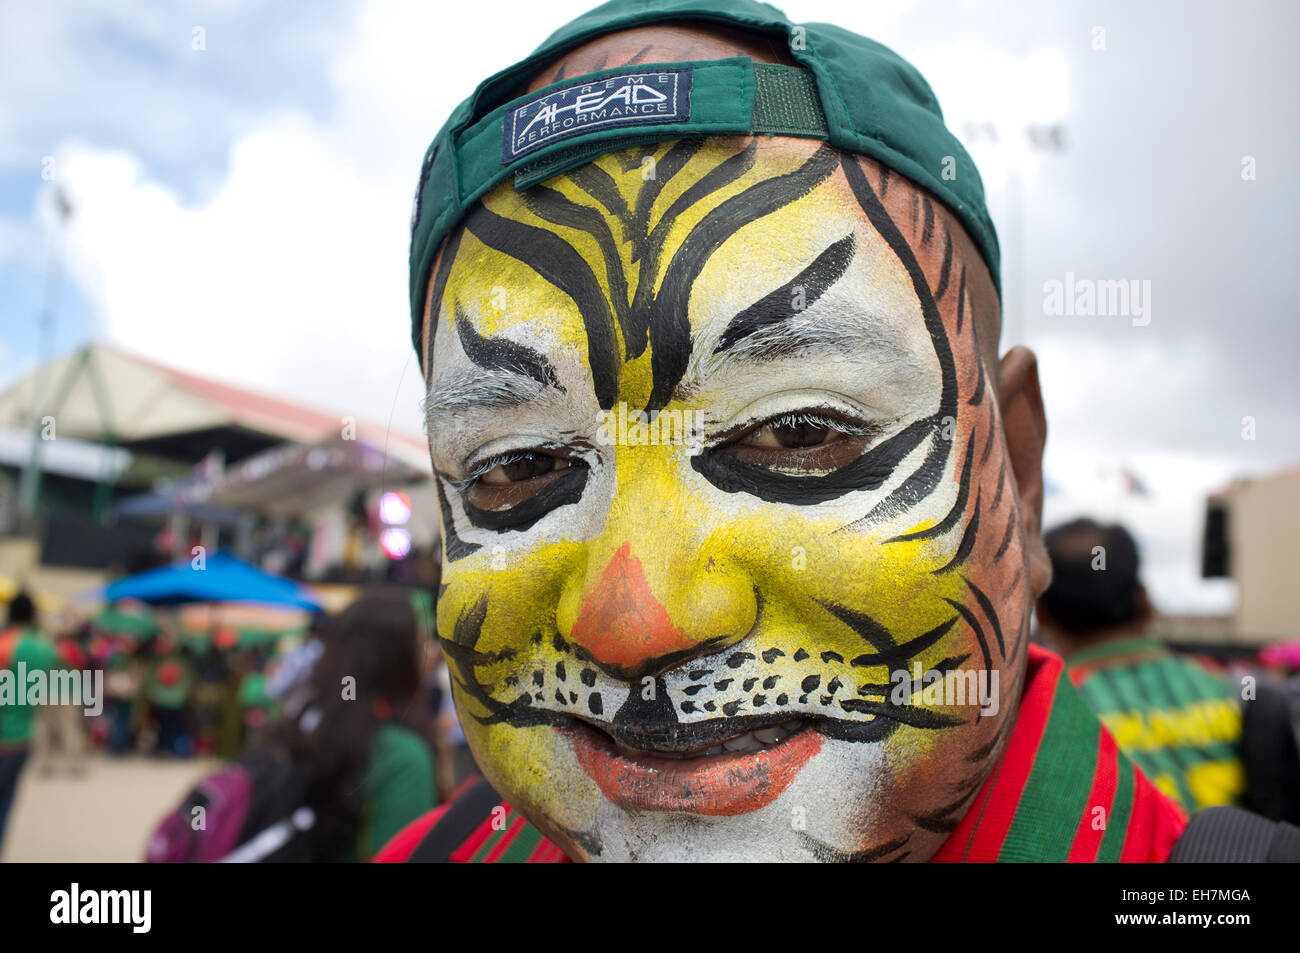 Adelaide Australia. 9th March 2015. Bangladesh cricket fans show spirit in contrast to the Barmy Army fans ahead - Stock Image